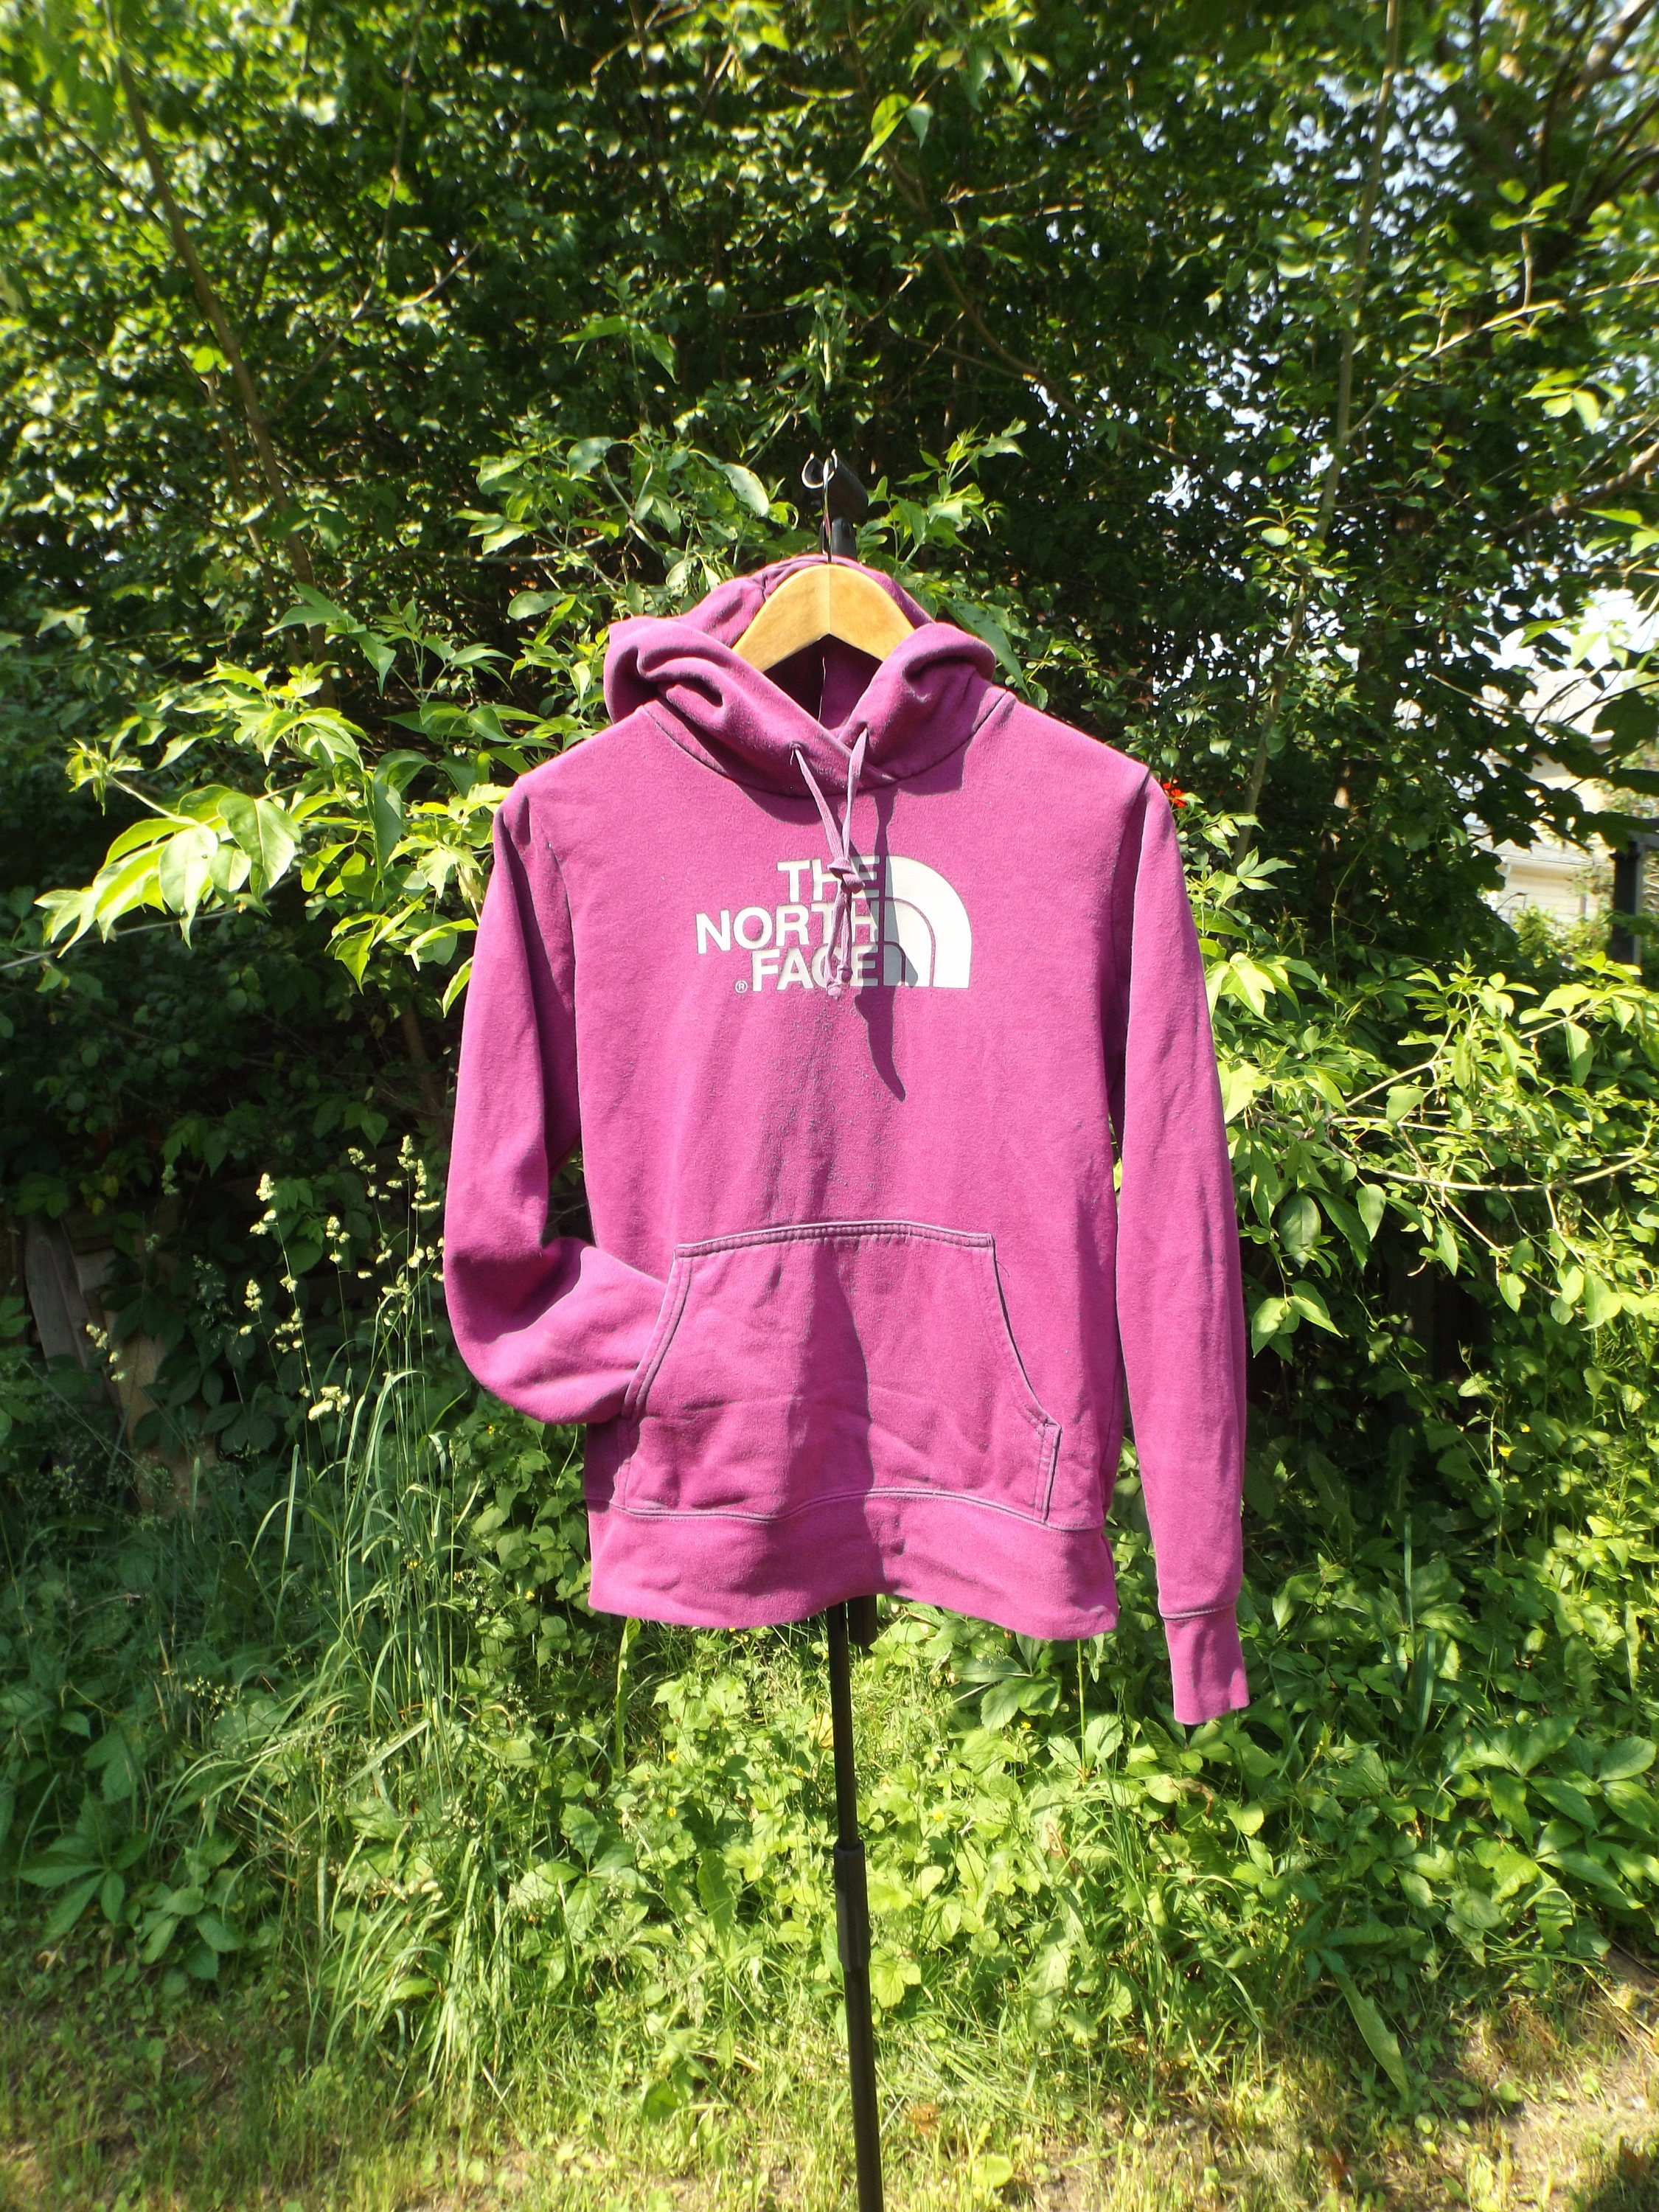 47c84a5eb North Face Hoodie, Grey Pink Fuscia, Vintage North Face, Hiking Adventure  Outdoors Camping Hoodie Sweatshirt 90's Clothing, Women's Small